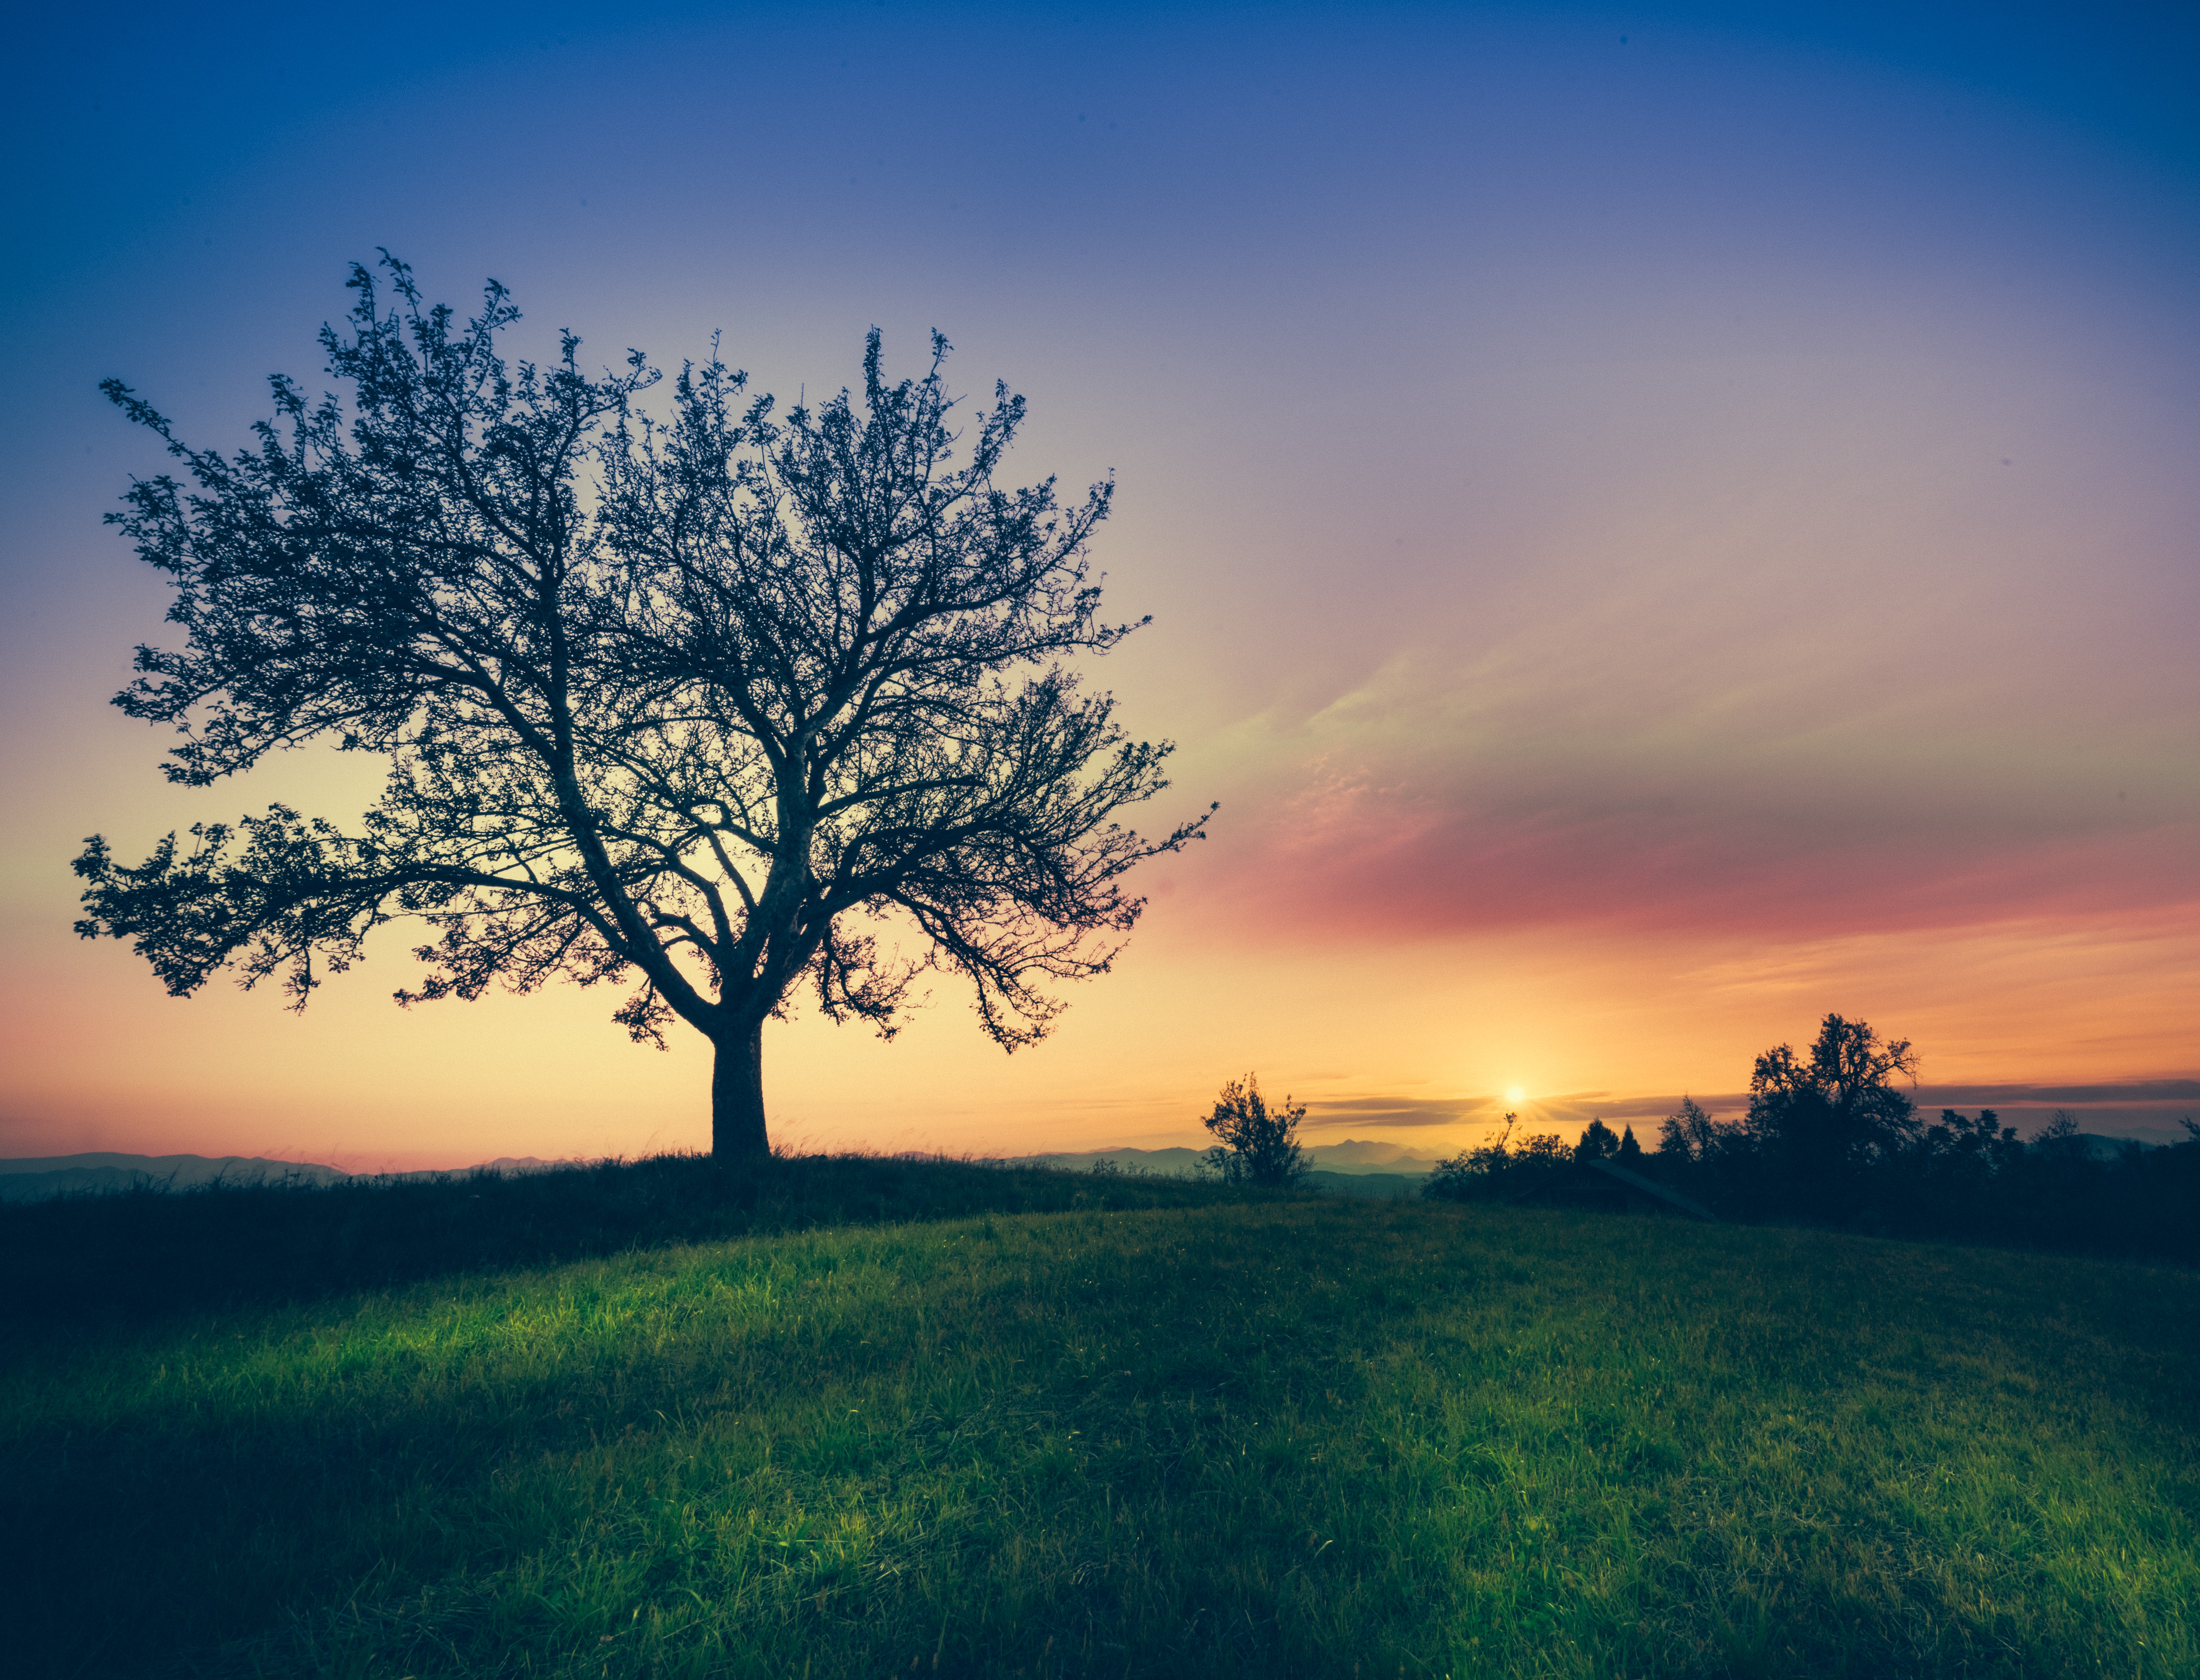 silhouette of tree surrounded by grass